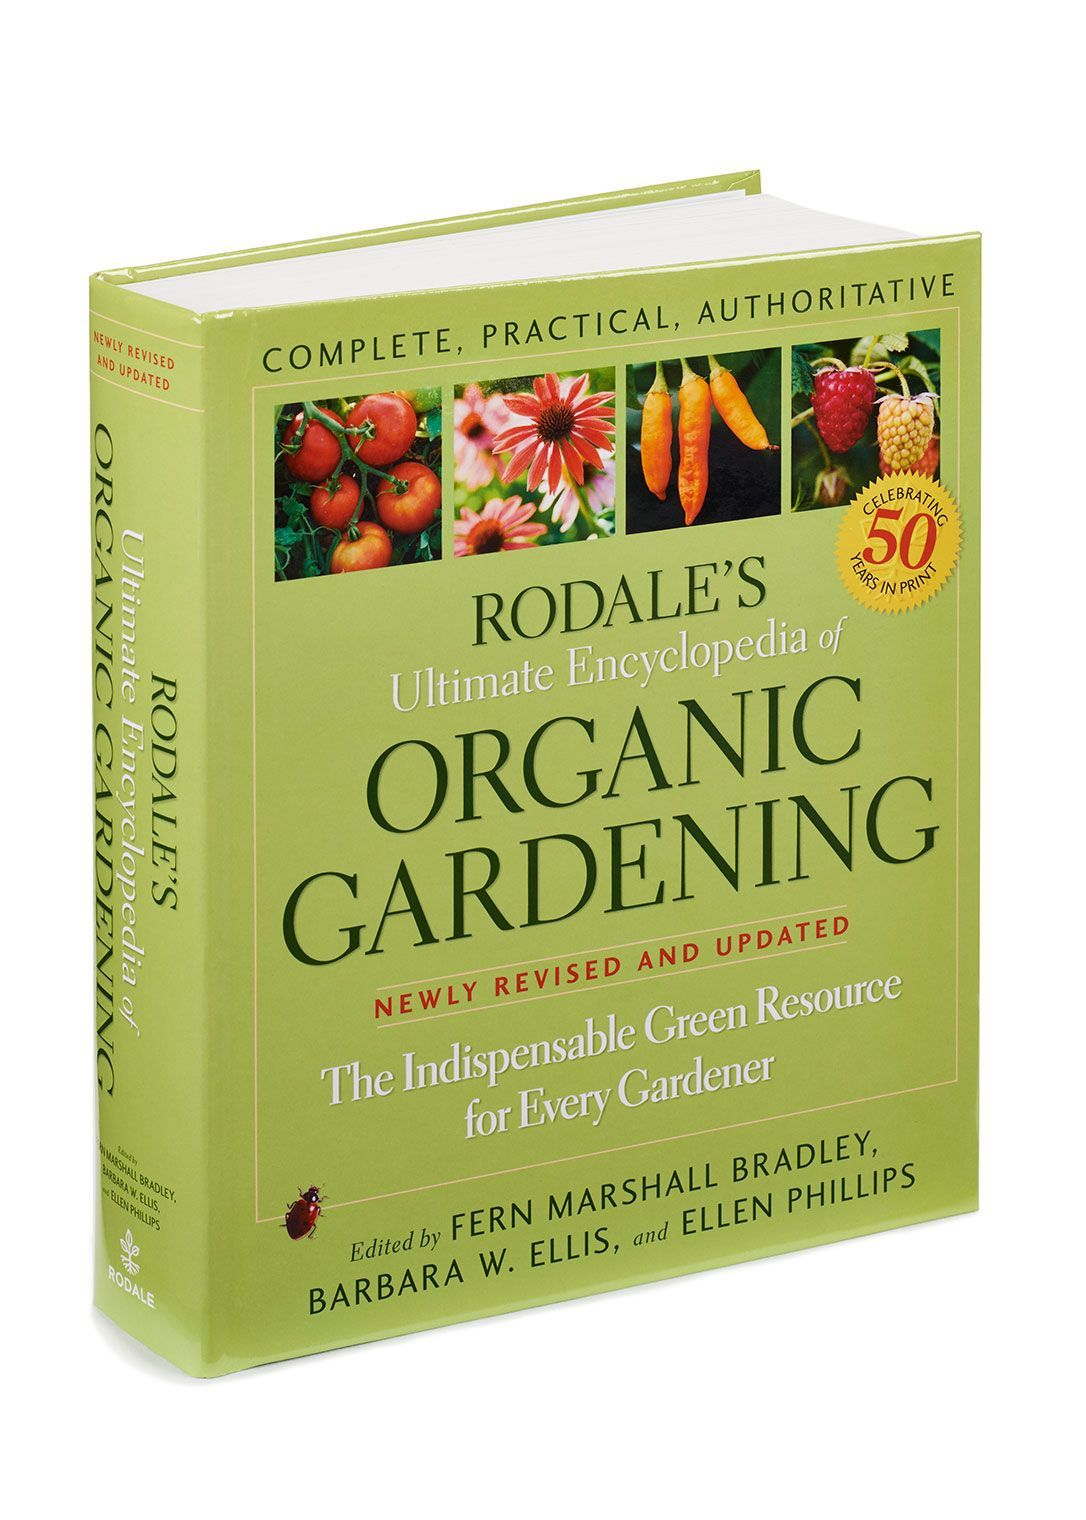 Rodale S Ultimate Encyclopedia Of Organic Gardening Has Been The